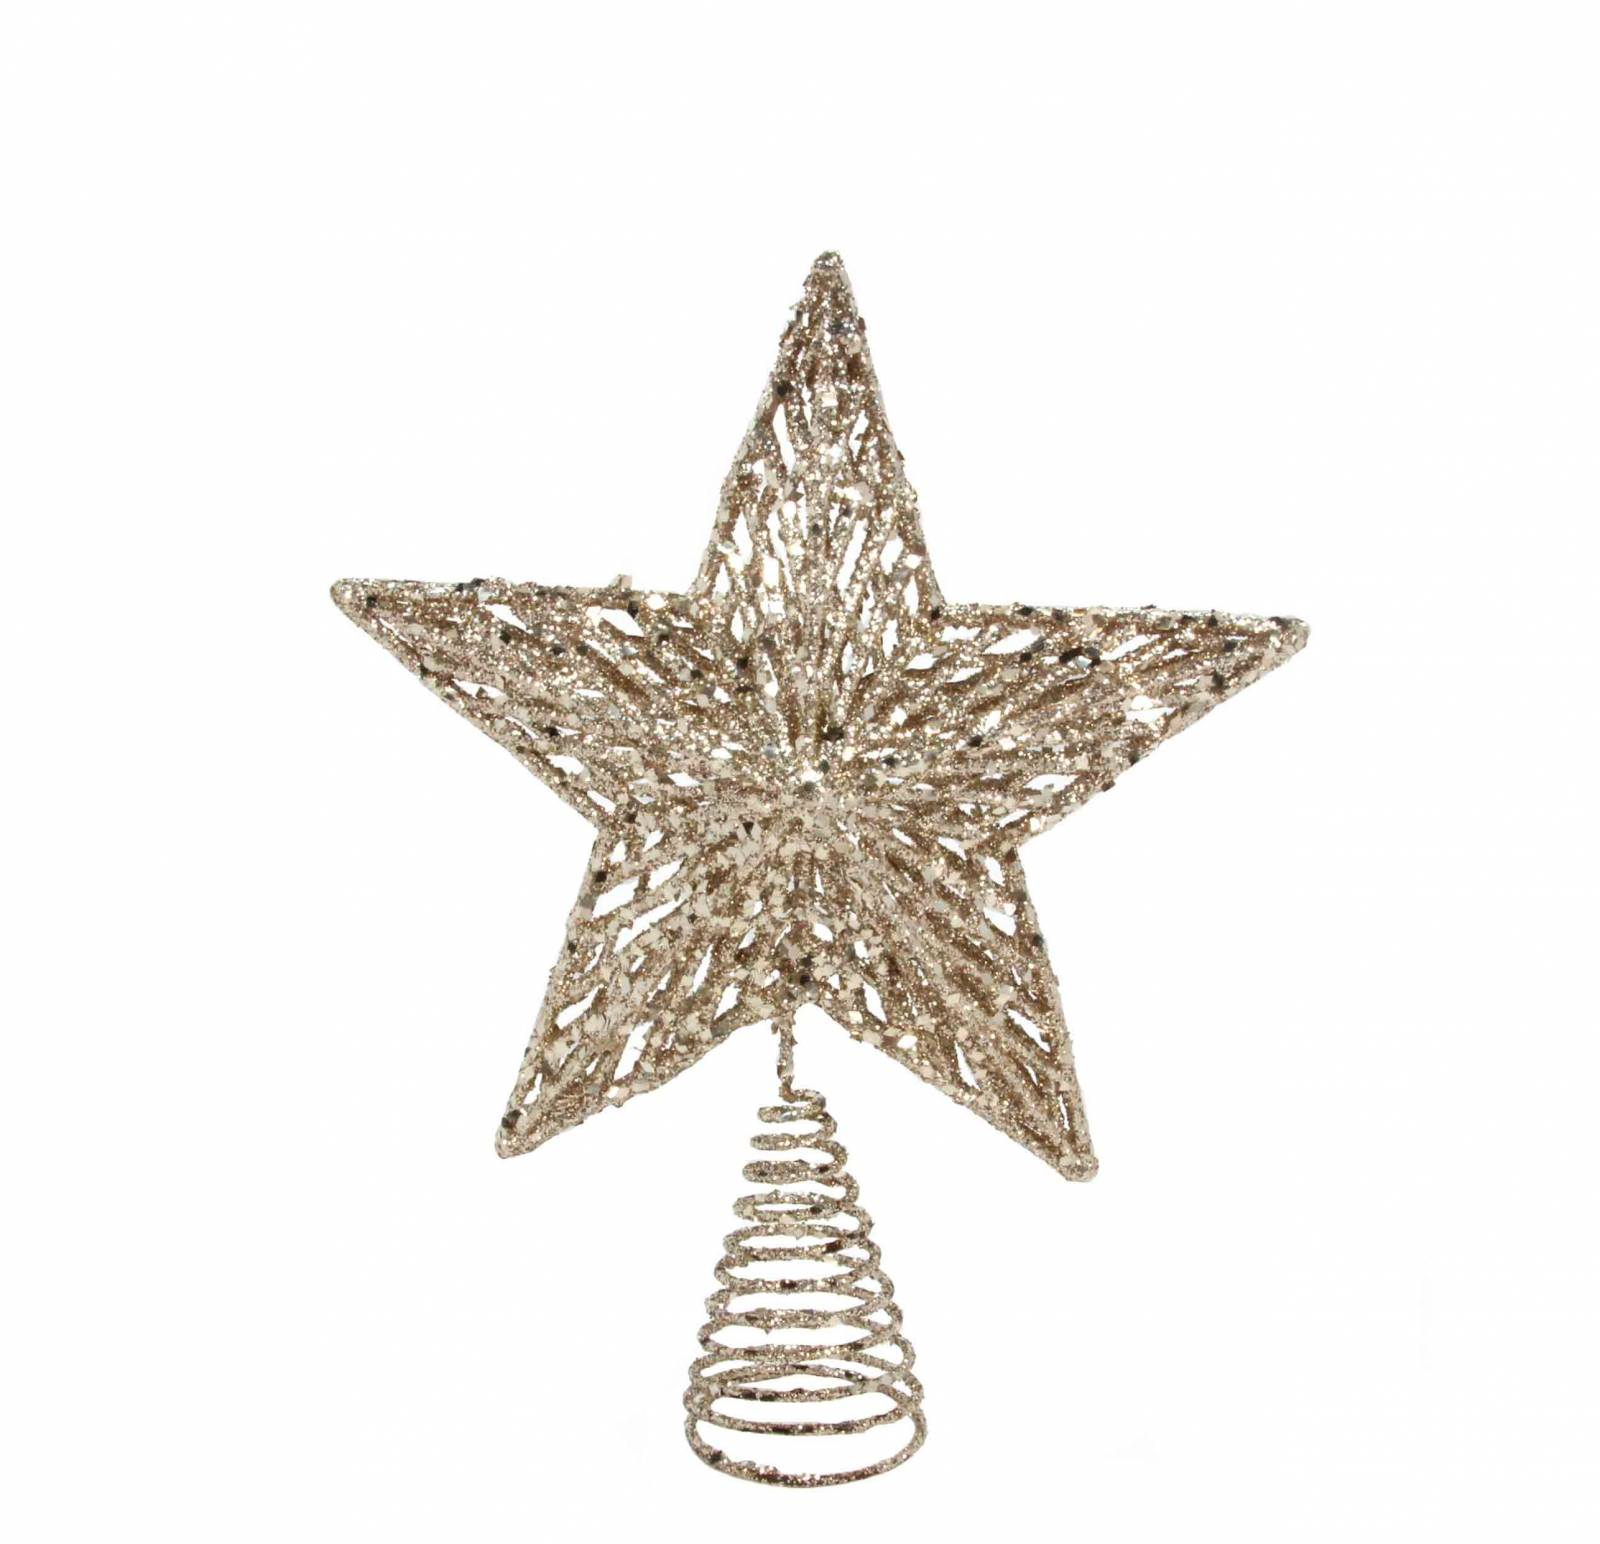 Small Gold Glitter Star Tree Topper Decoration By Gisela Graham